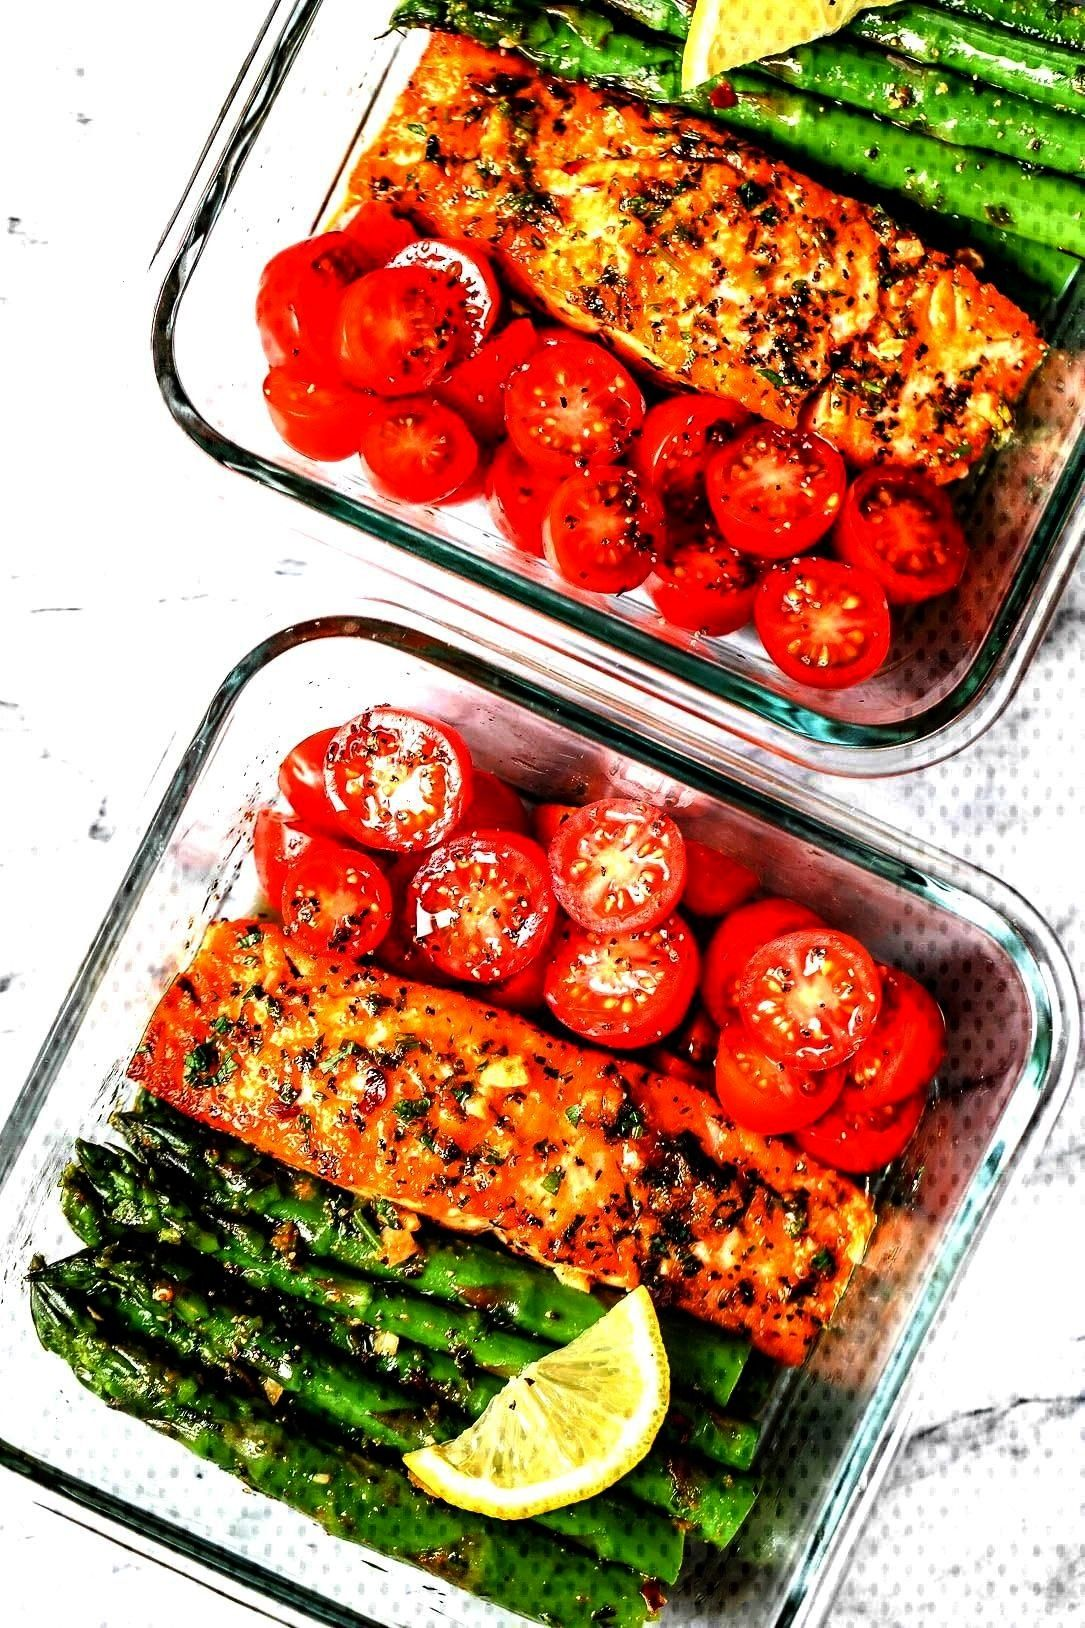 Meal-Prep Garlic Butter Salmon with Asparagus - - This easy garlic butter salmon meal prep wMinute